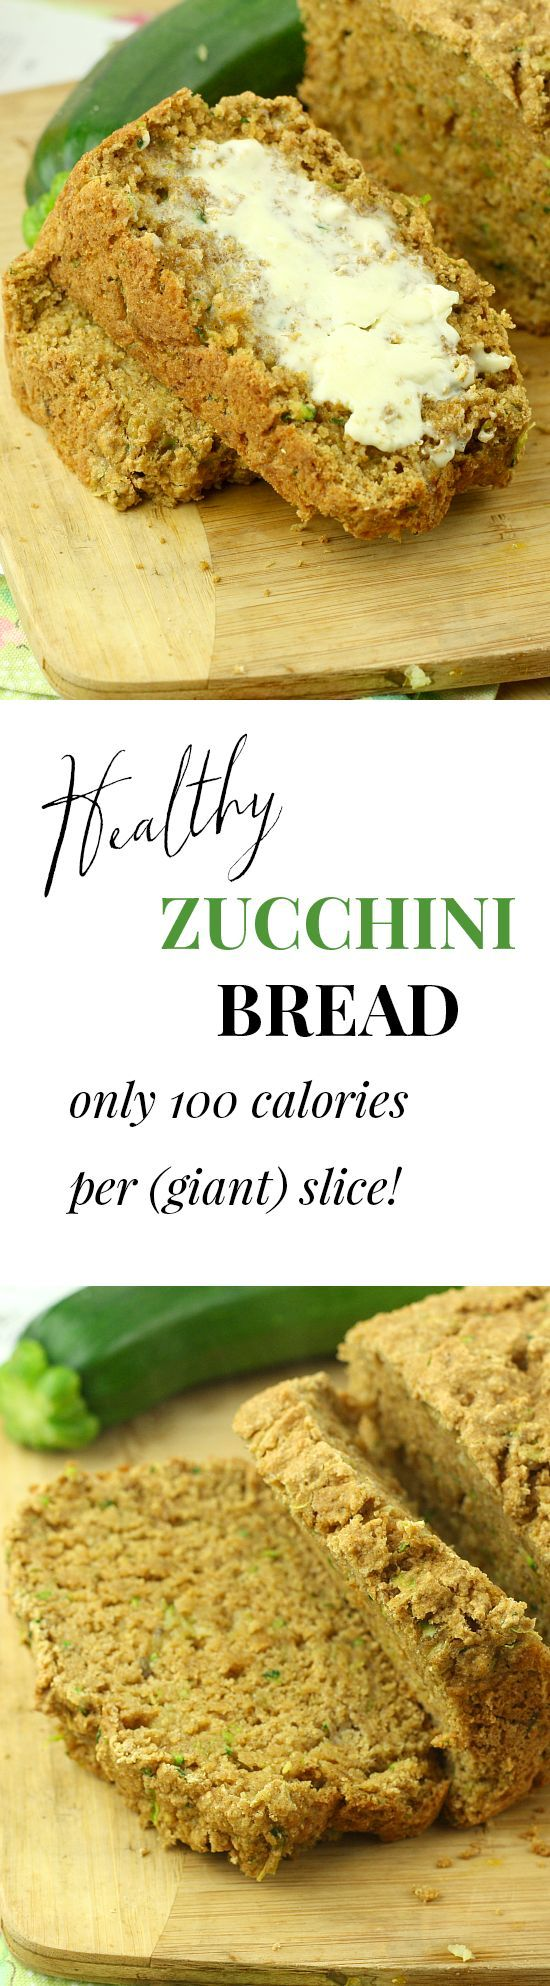 The BEST zucchini bread EVER. Only 100 calories for a giant slice! I made this for a party and everyone raved about it.